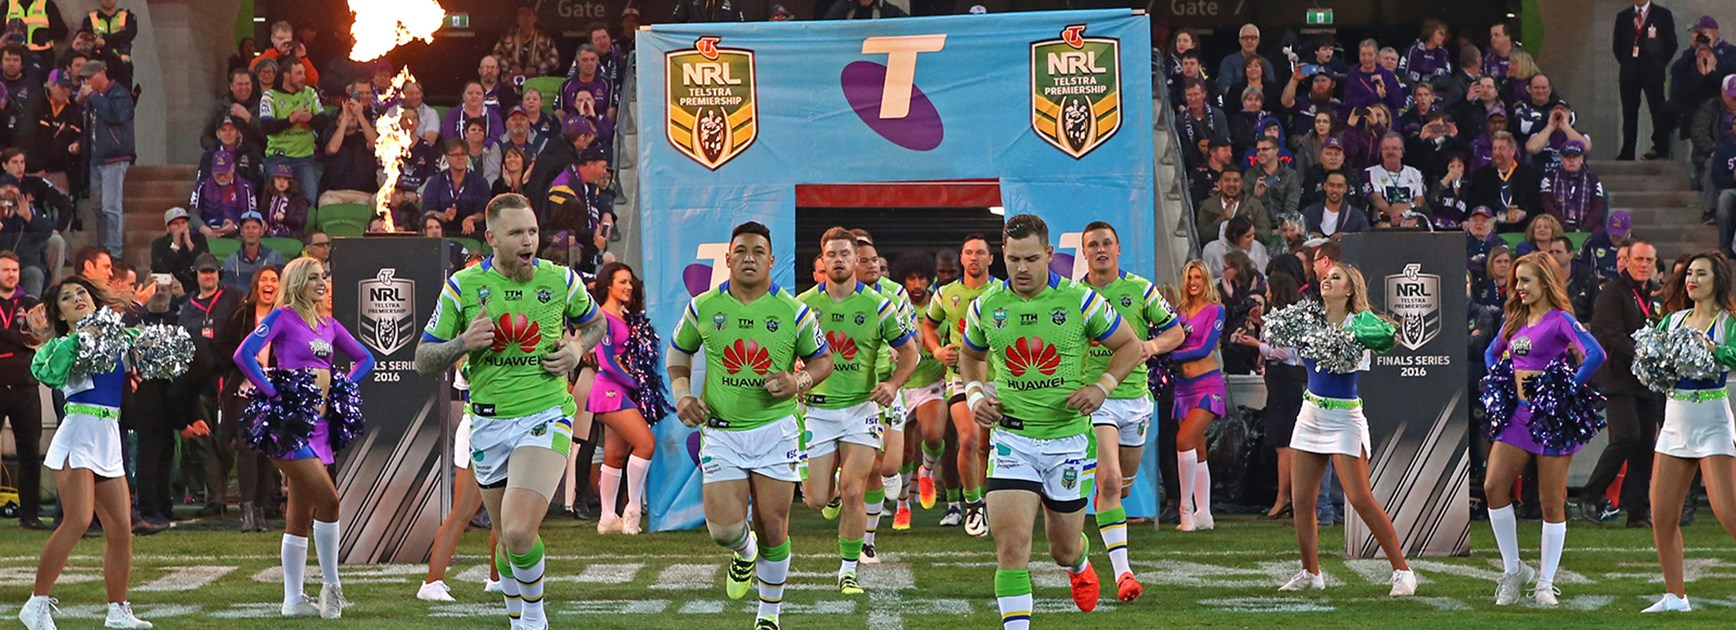 The Canberra Raiders run out on to AAMI Park to face the Storm in a preliminary final.